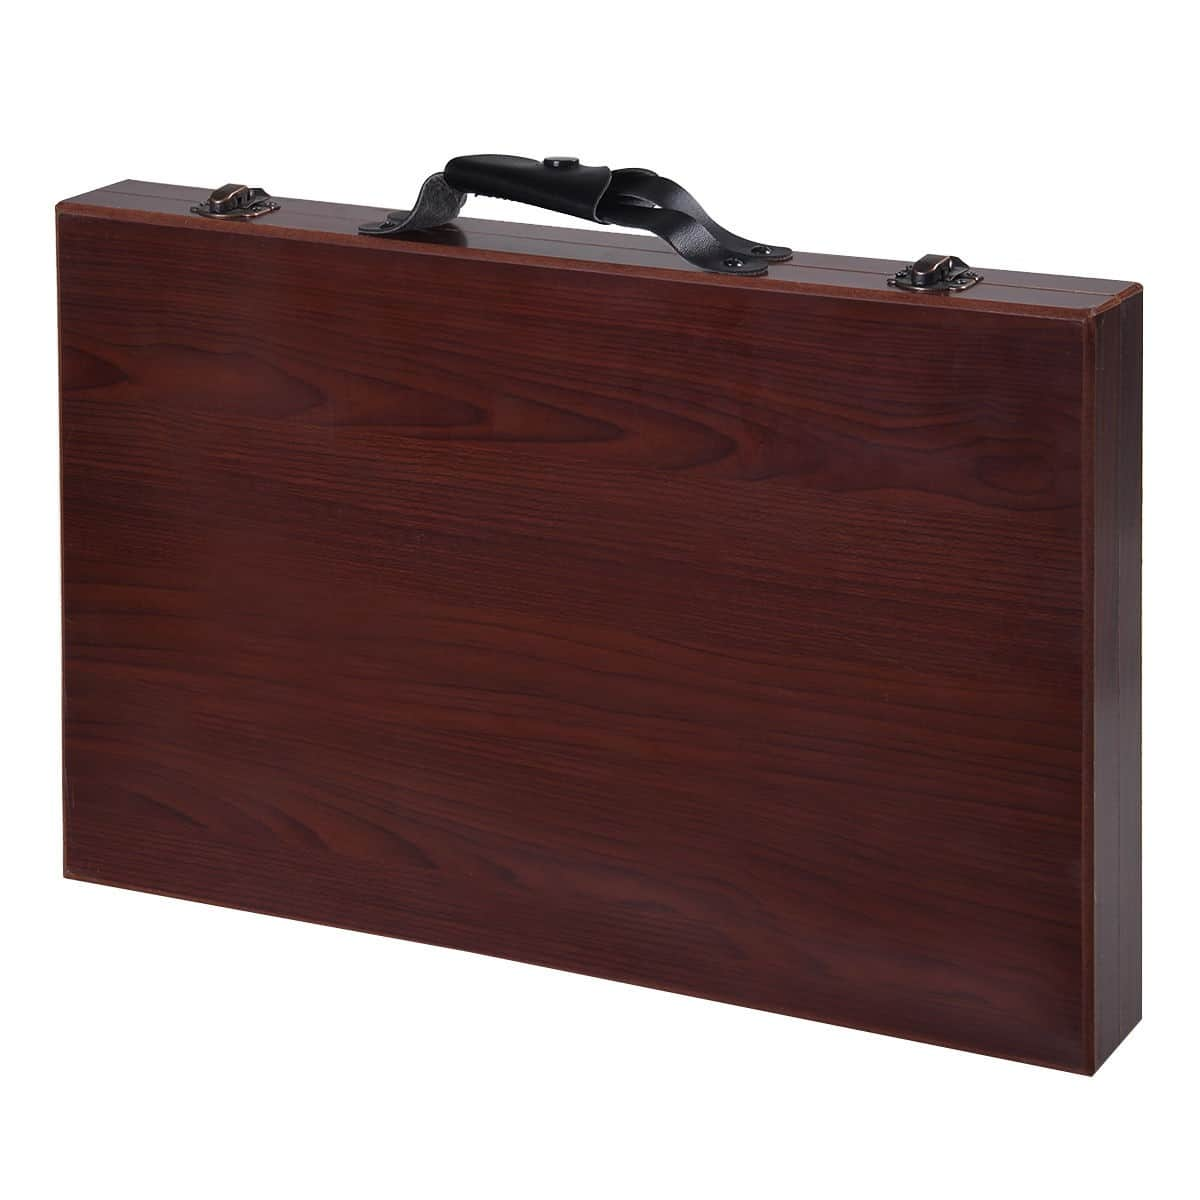 Costway 80-Piece Art Set Drawing Accessories with Wood Case - $15.95 + Free Shipping